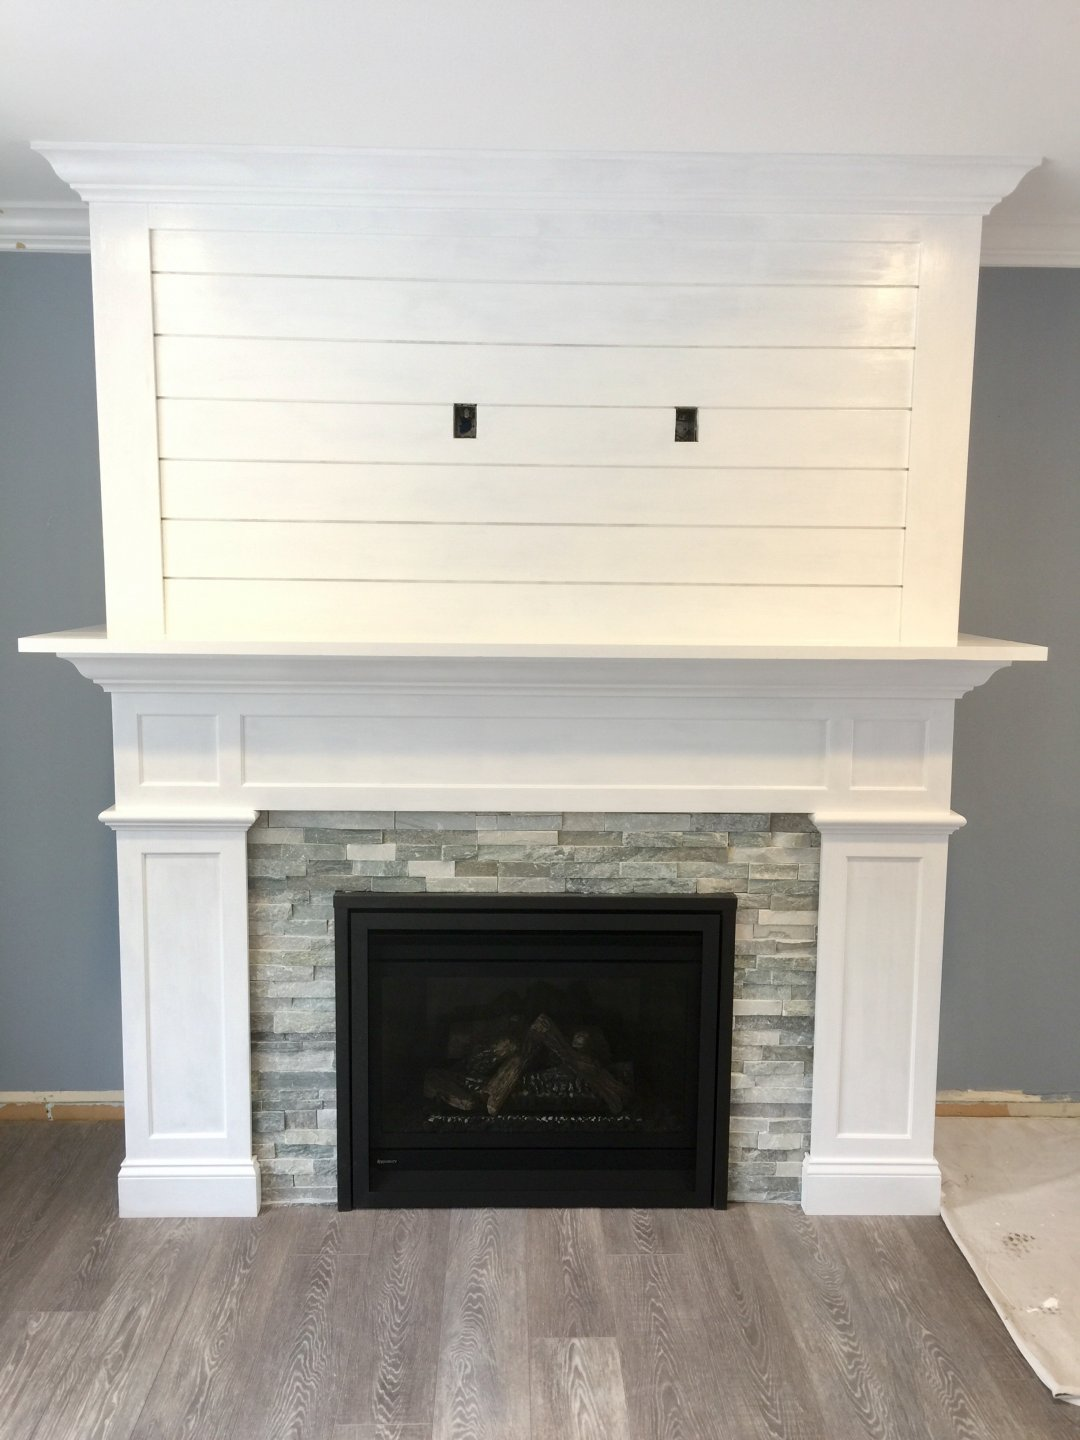 shiplap-fireplace-etc-pinterest-living-hearth-stone-tiles-tile-ideas-around-gas-surround-design-pictures-heat-resistant-for-home-decor-rooms-and-house-how-to-projects-using-1080x1440.jpg